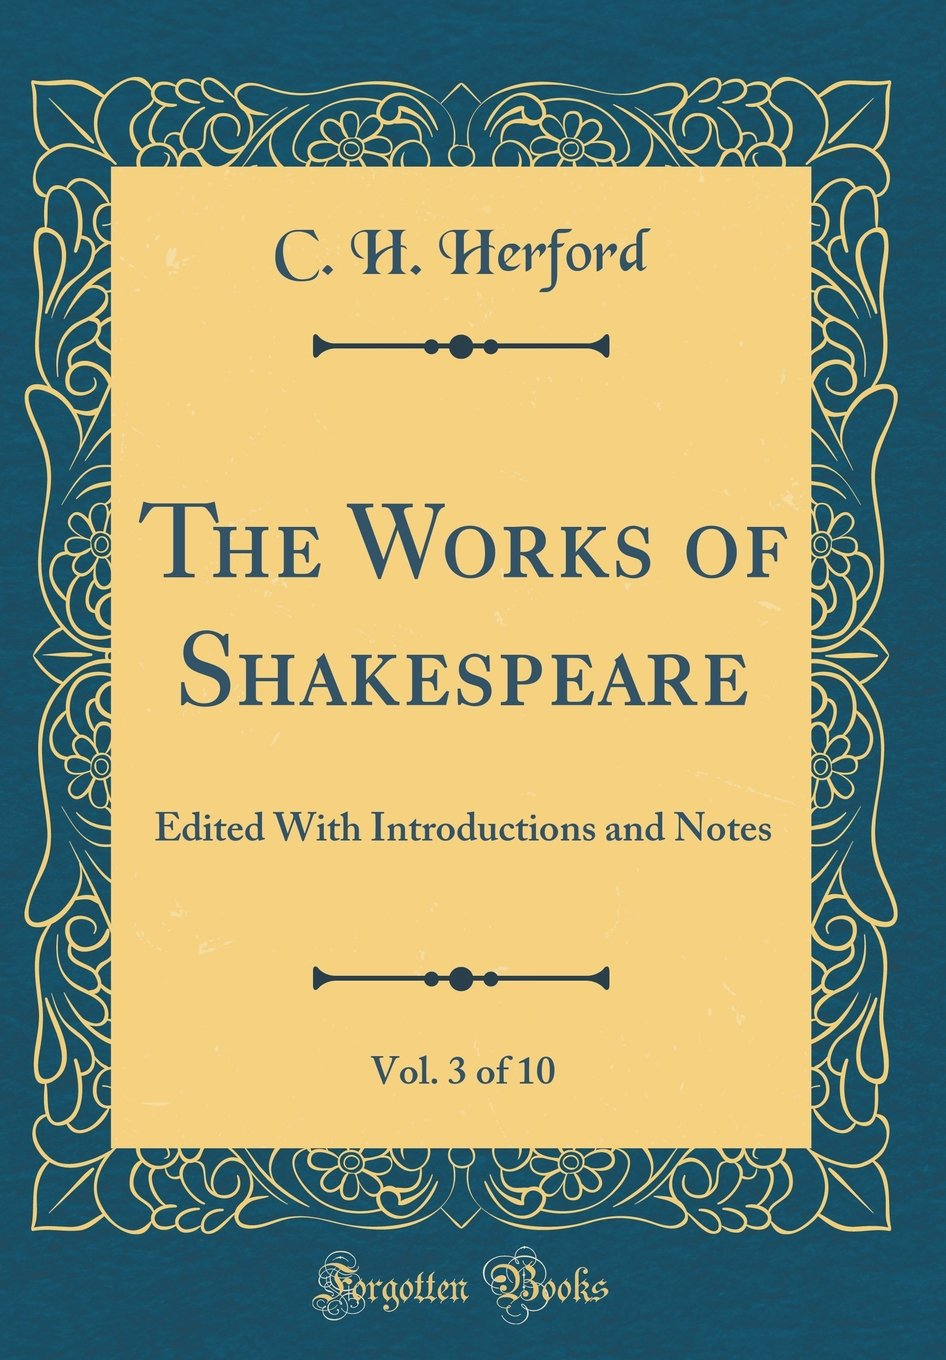 The Works of Shakespeare, Vol. 3 of 10: Edited With Introductions and Notes (Classic Reprint) pdf epub